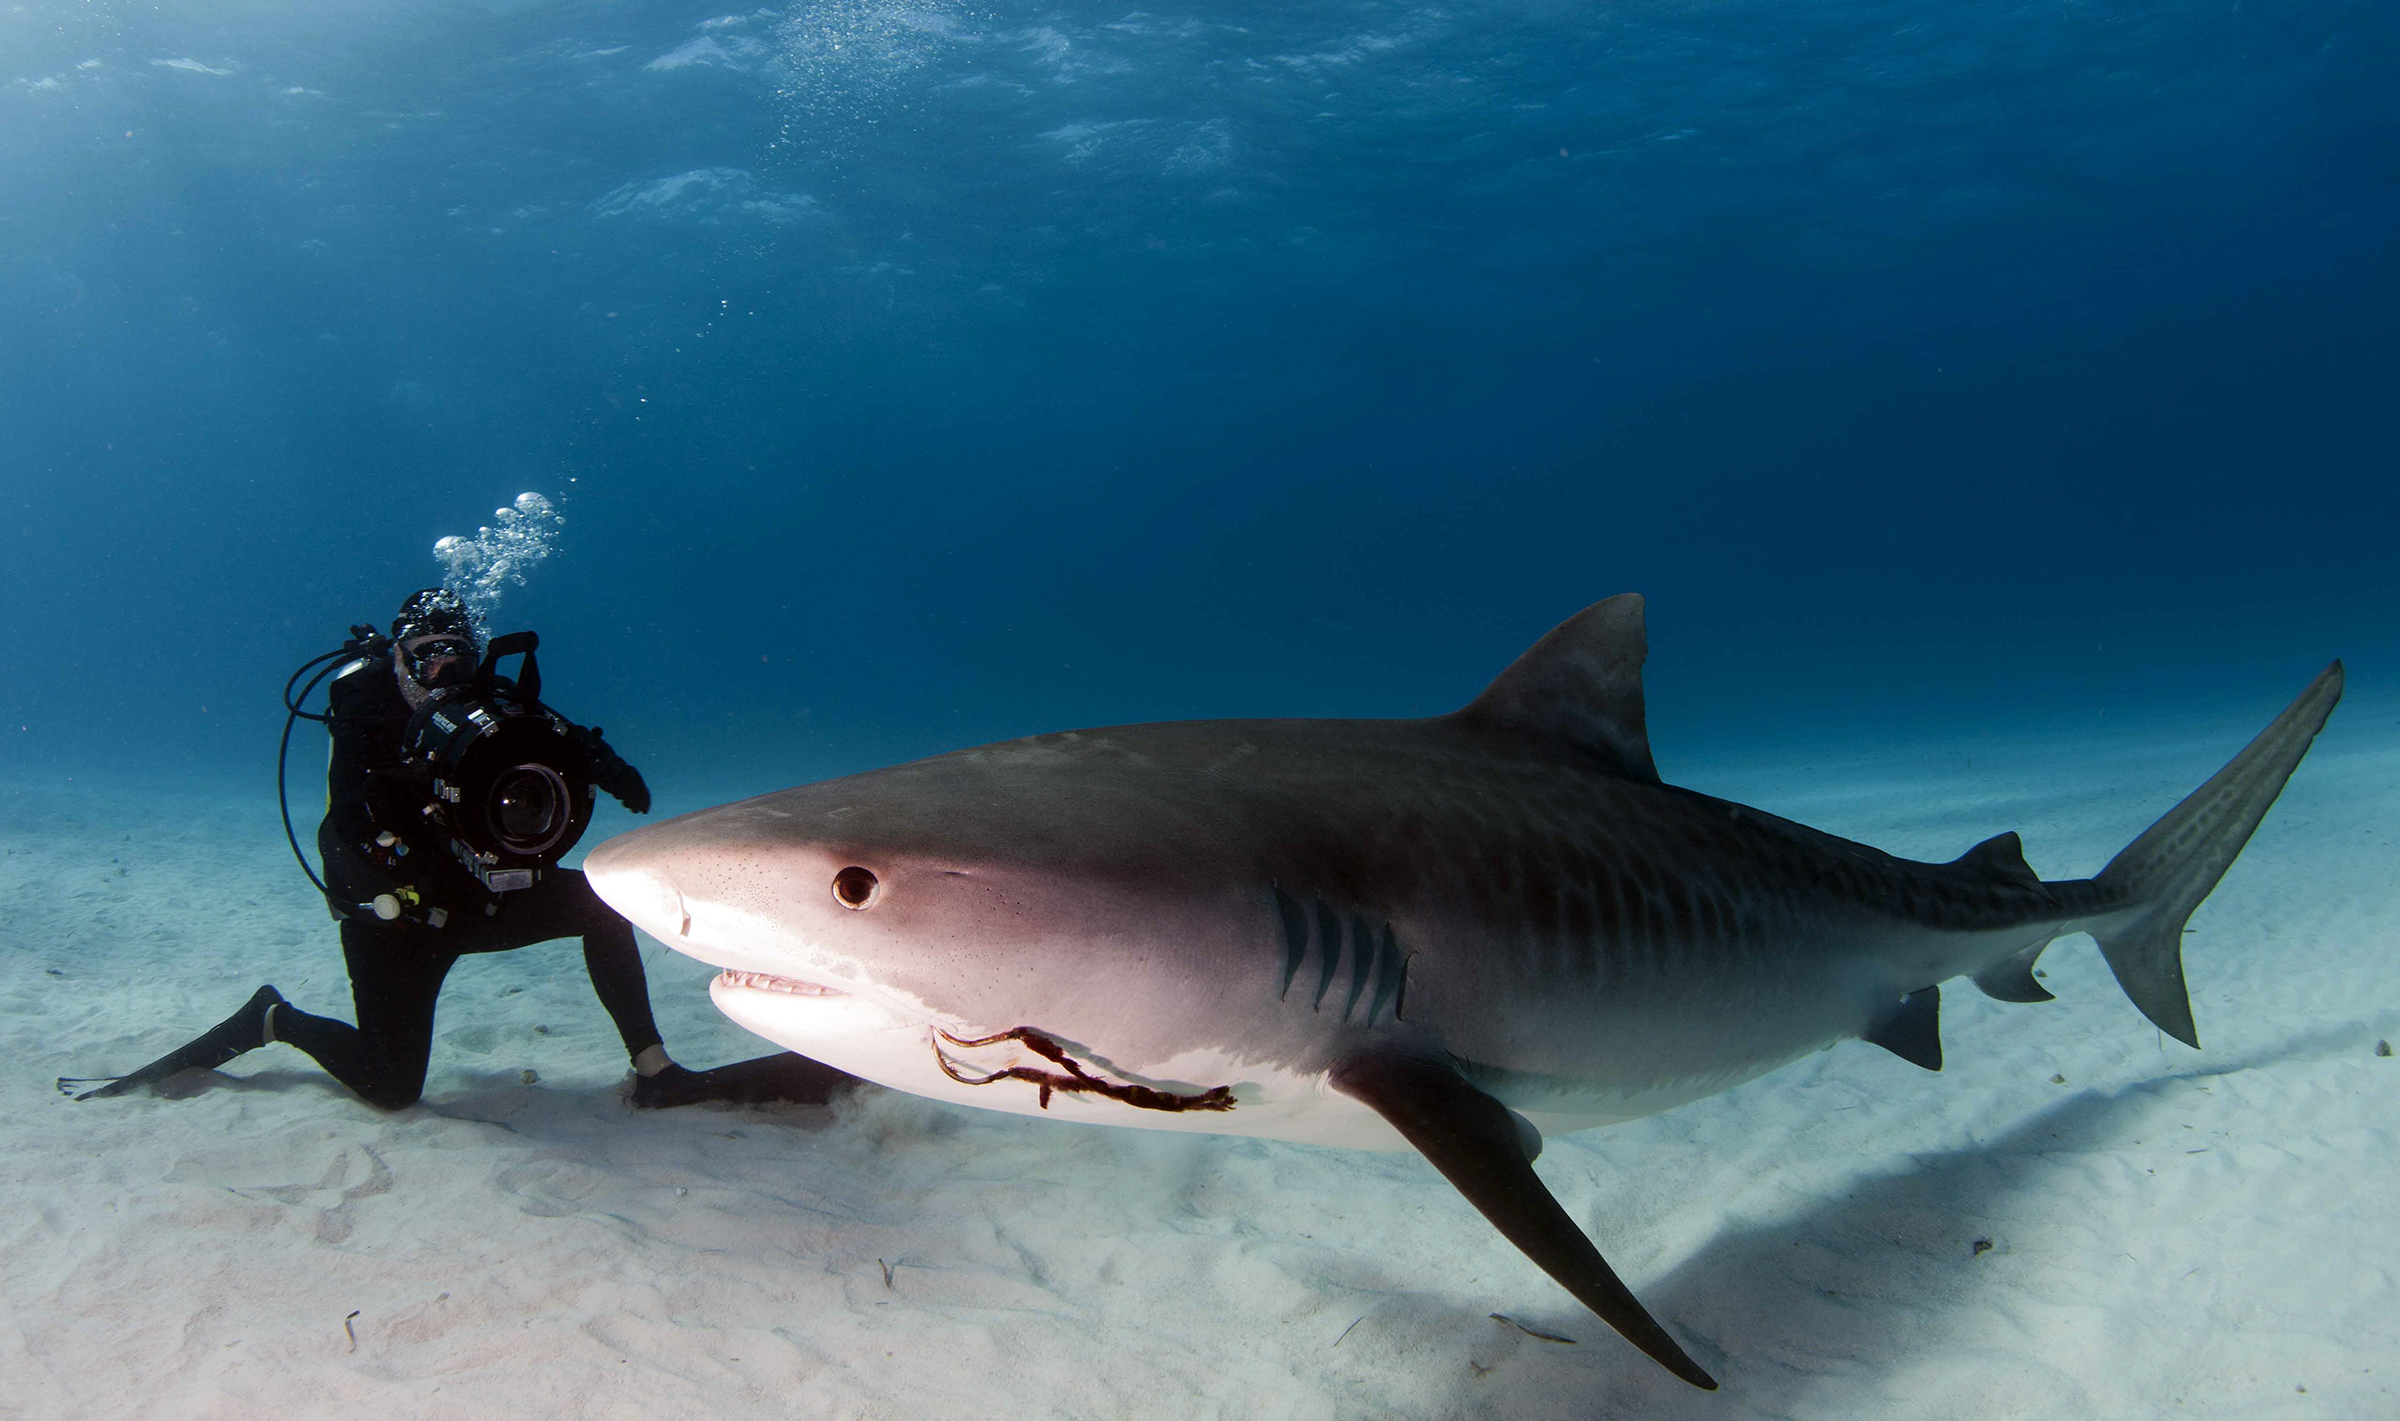 Underwater filmmaker Paul Cater Deaton films a 12-foot tiger shark during the production of his film 'Showdown at 'Tiger Beach.' (Photo by Chris Mazingo)